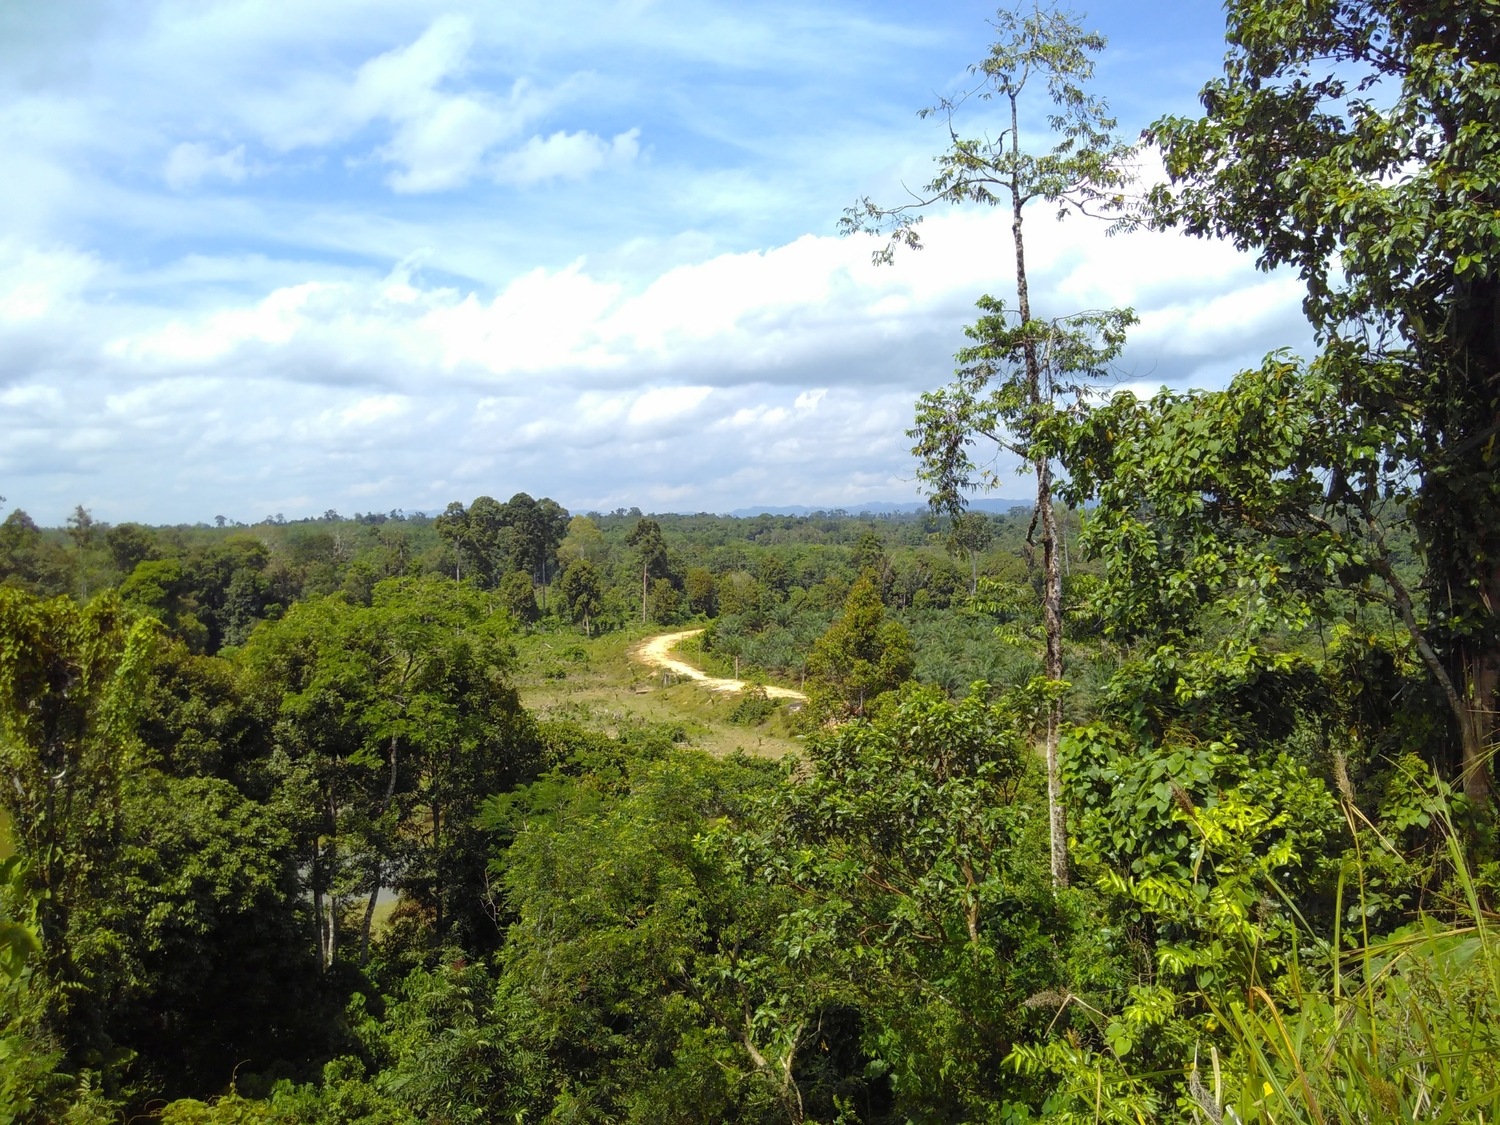 View from the Muara Sekalo village towards the Thirty Hills National Park in Indonesia